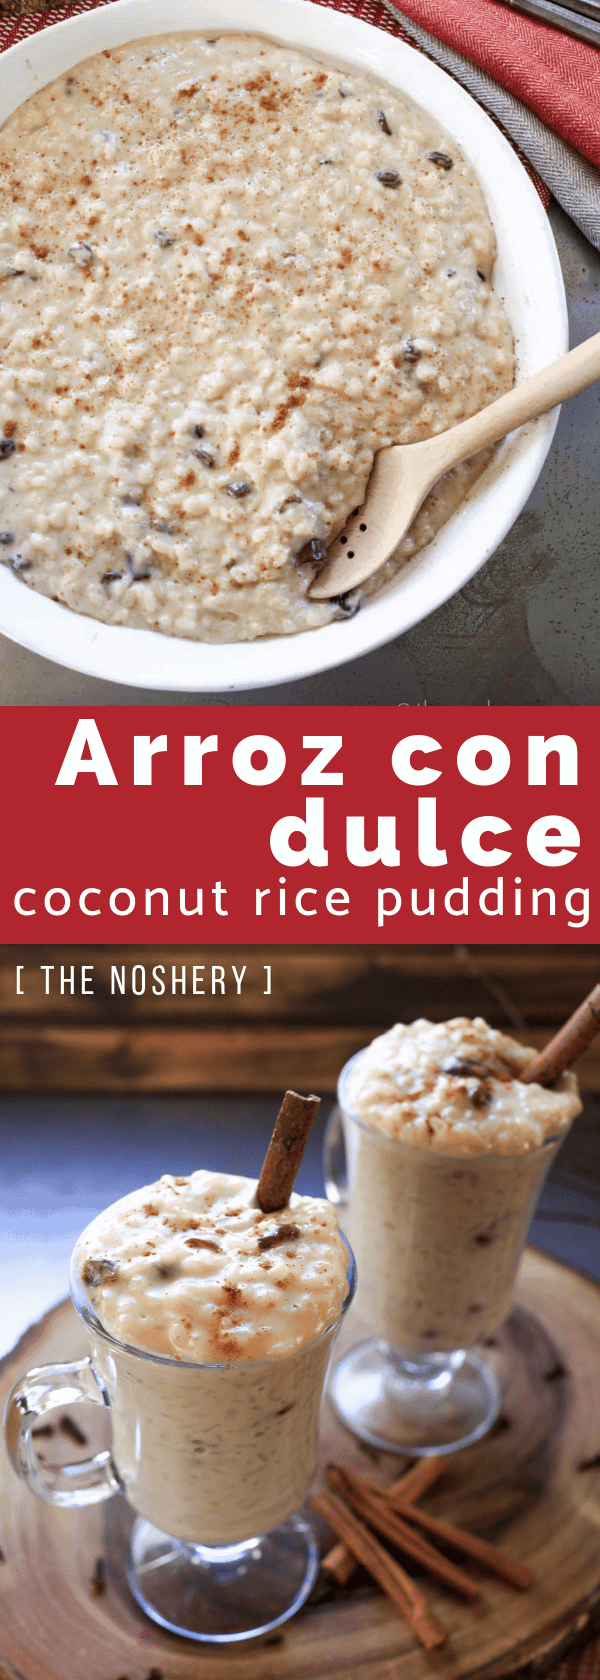 Arroz Con Dulce (Coconut Rice Pudding) | Arroz con dulce is a traditional Puerto Rican dessert made with rice, coconut milk, and spices. It's creamy, spiced, and one of my favorite desserts. | The Noshery